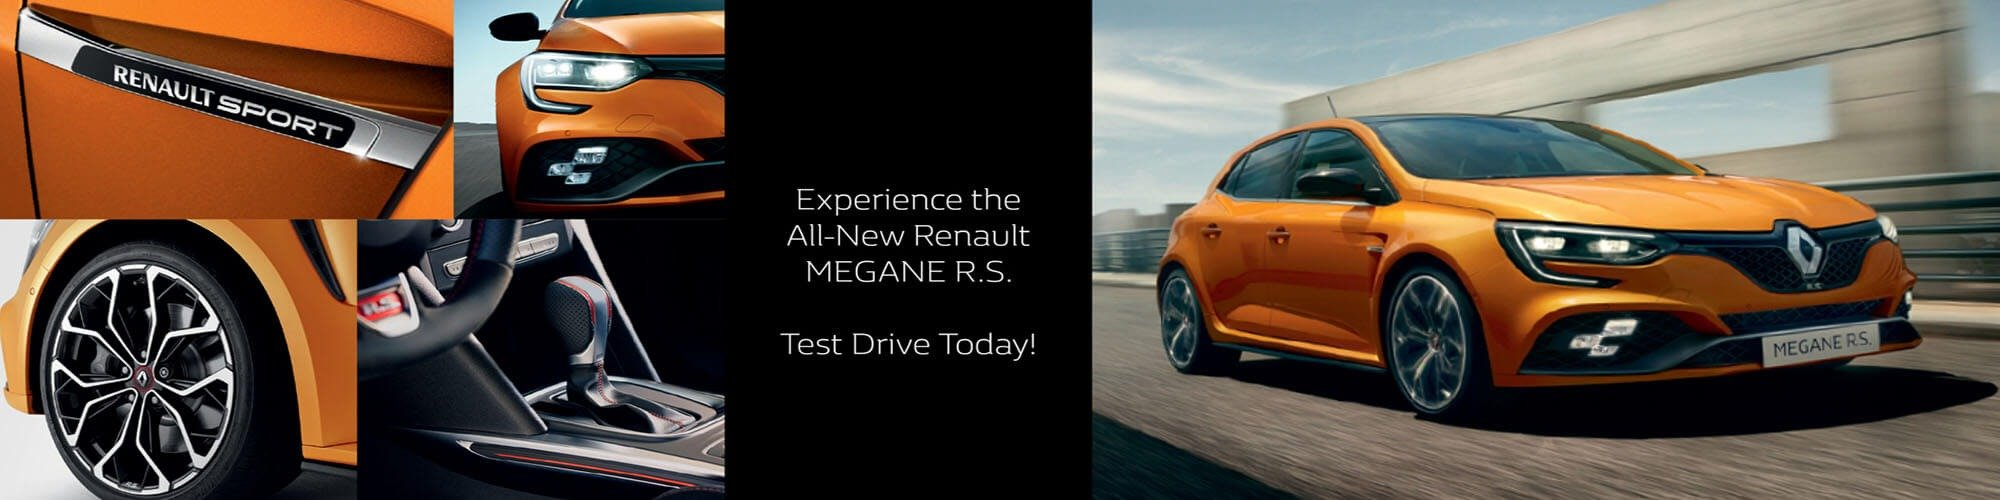 Test Drive The New Renault Megane R.S.